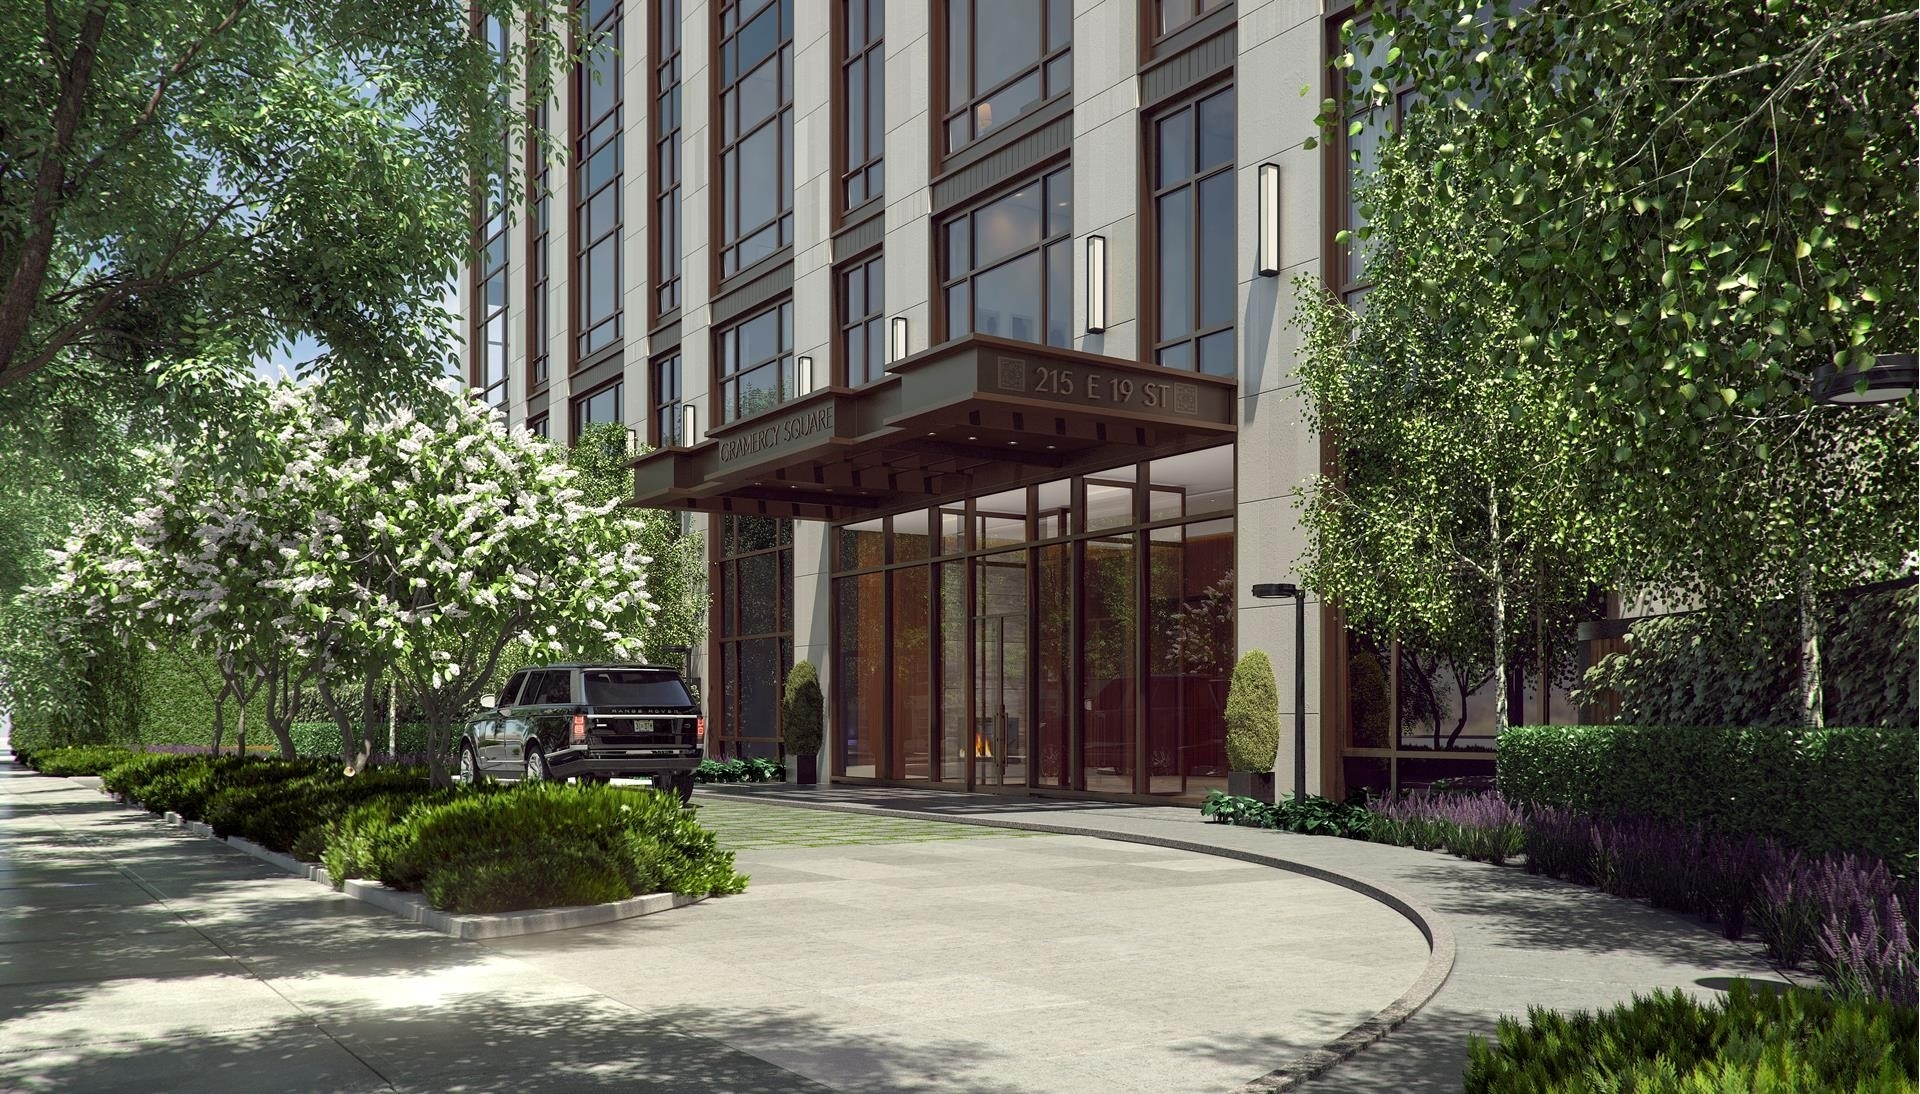 3. Condominiums for Sale at Gramercy Square, 215 East 19th St, 17A Gramercy Park, New York, NY 10003